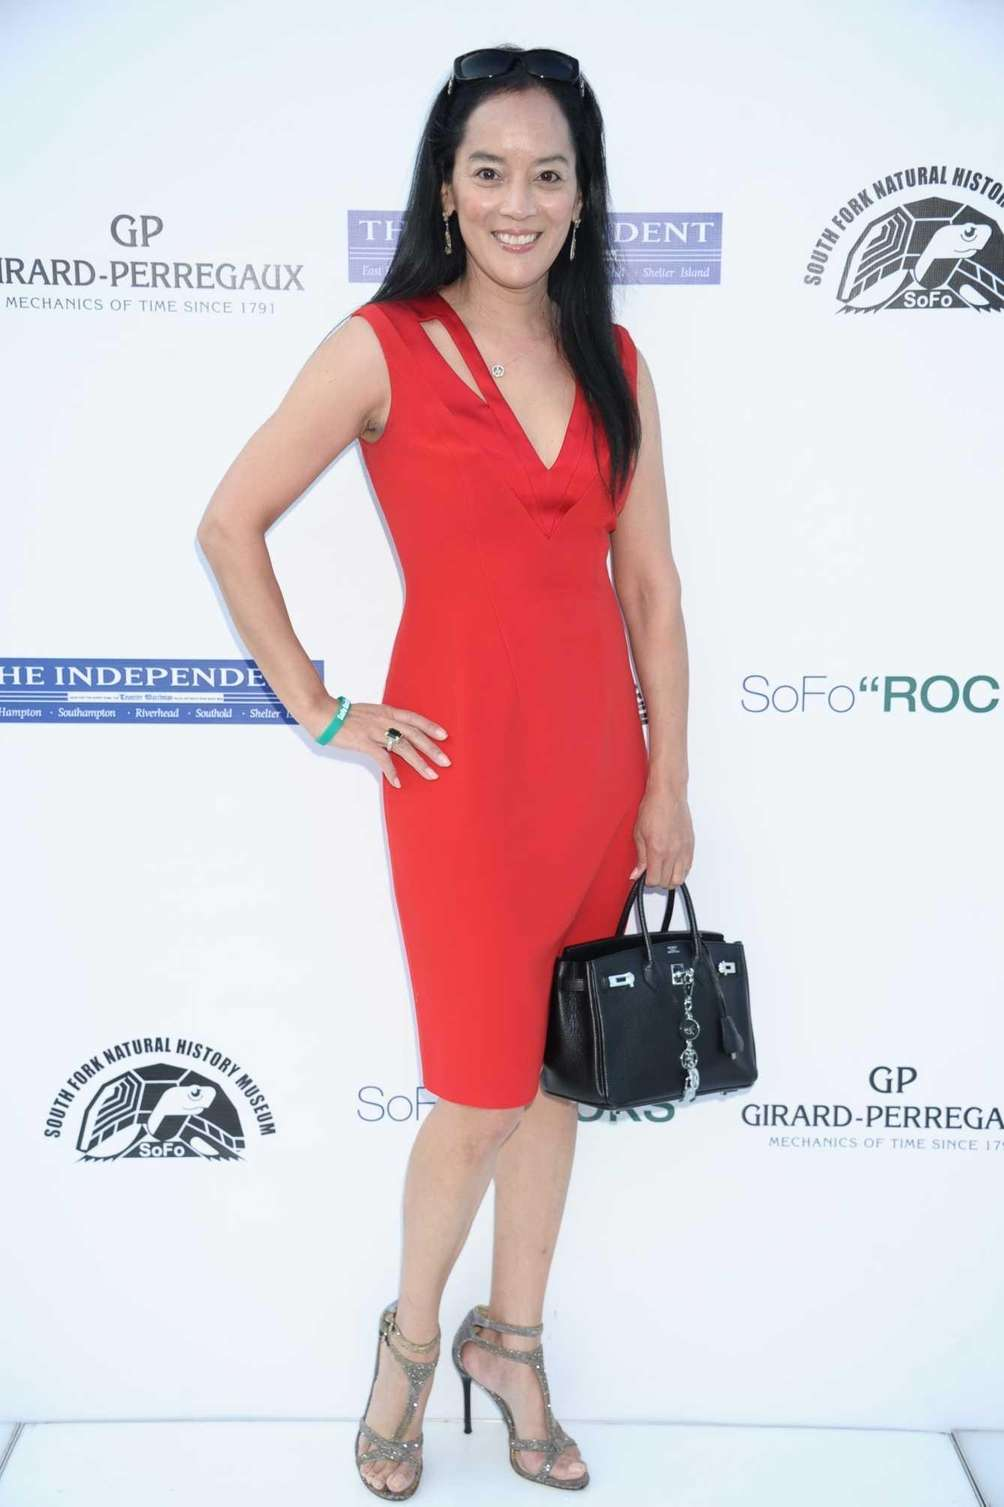 Cassandra Seidenfeld attends the SOFO Rocks benefit in